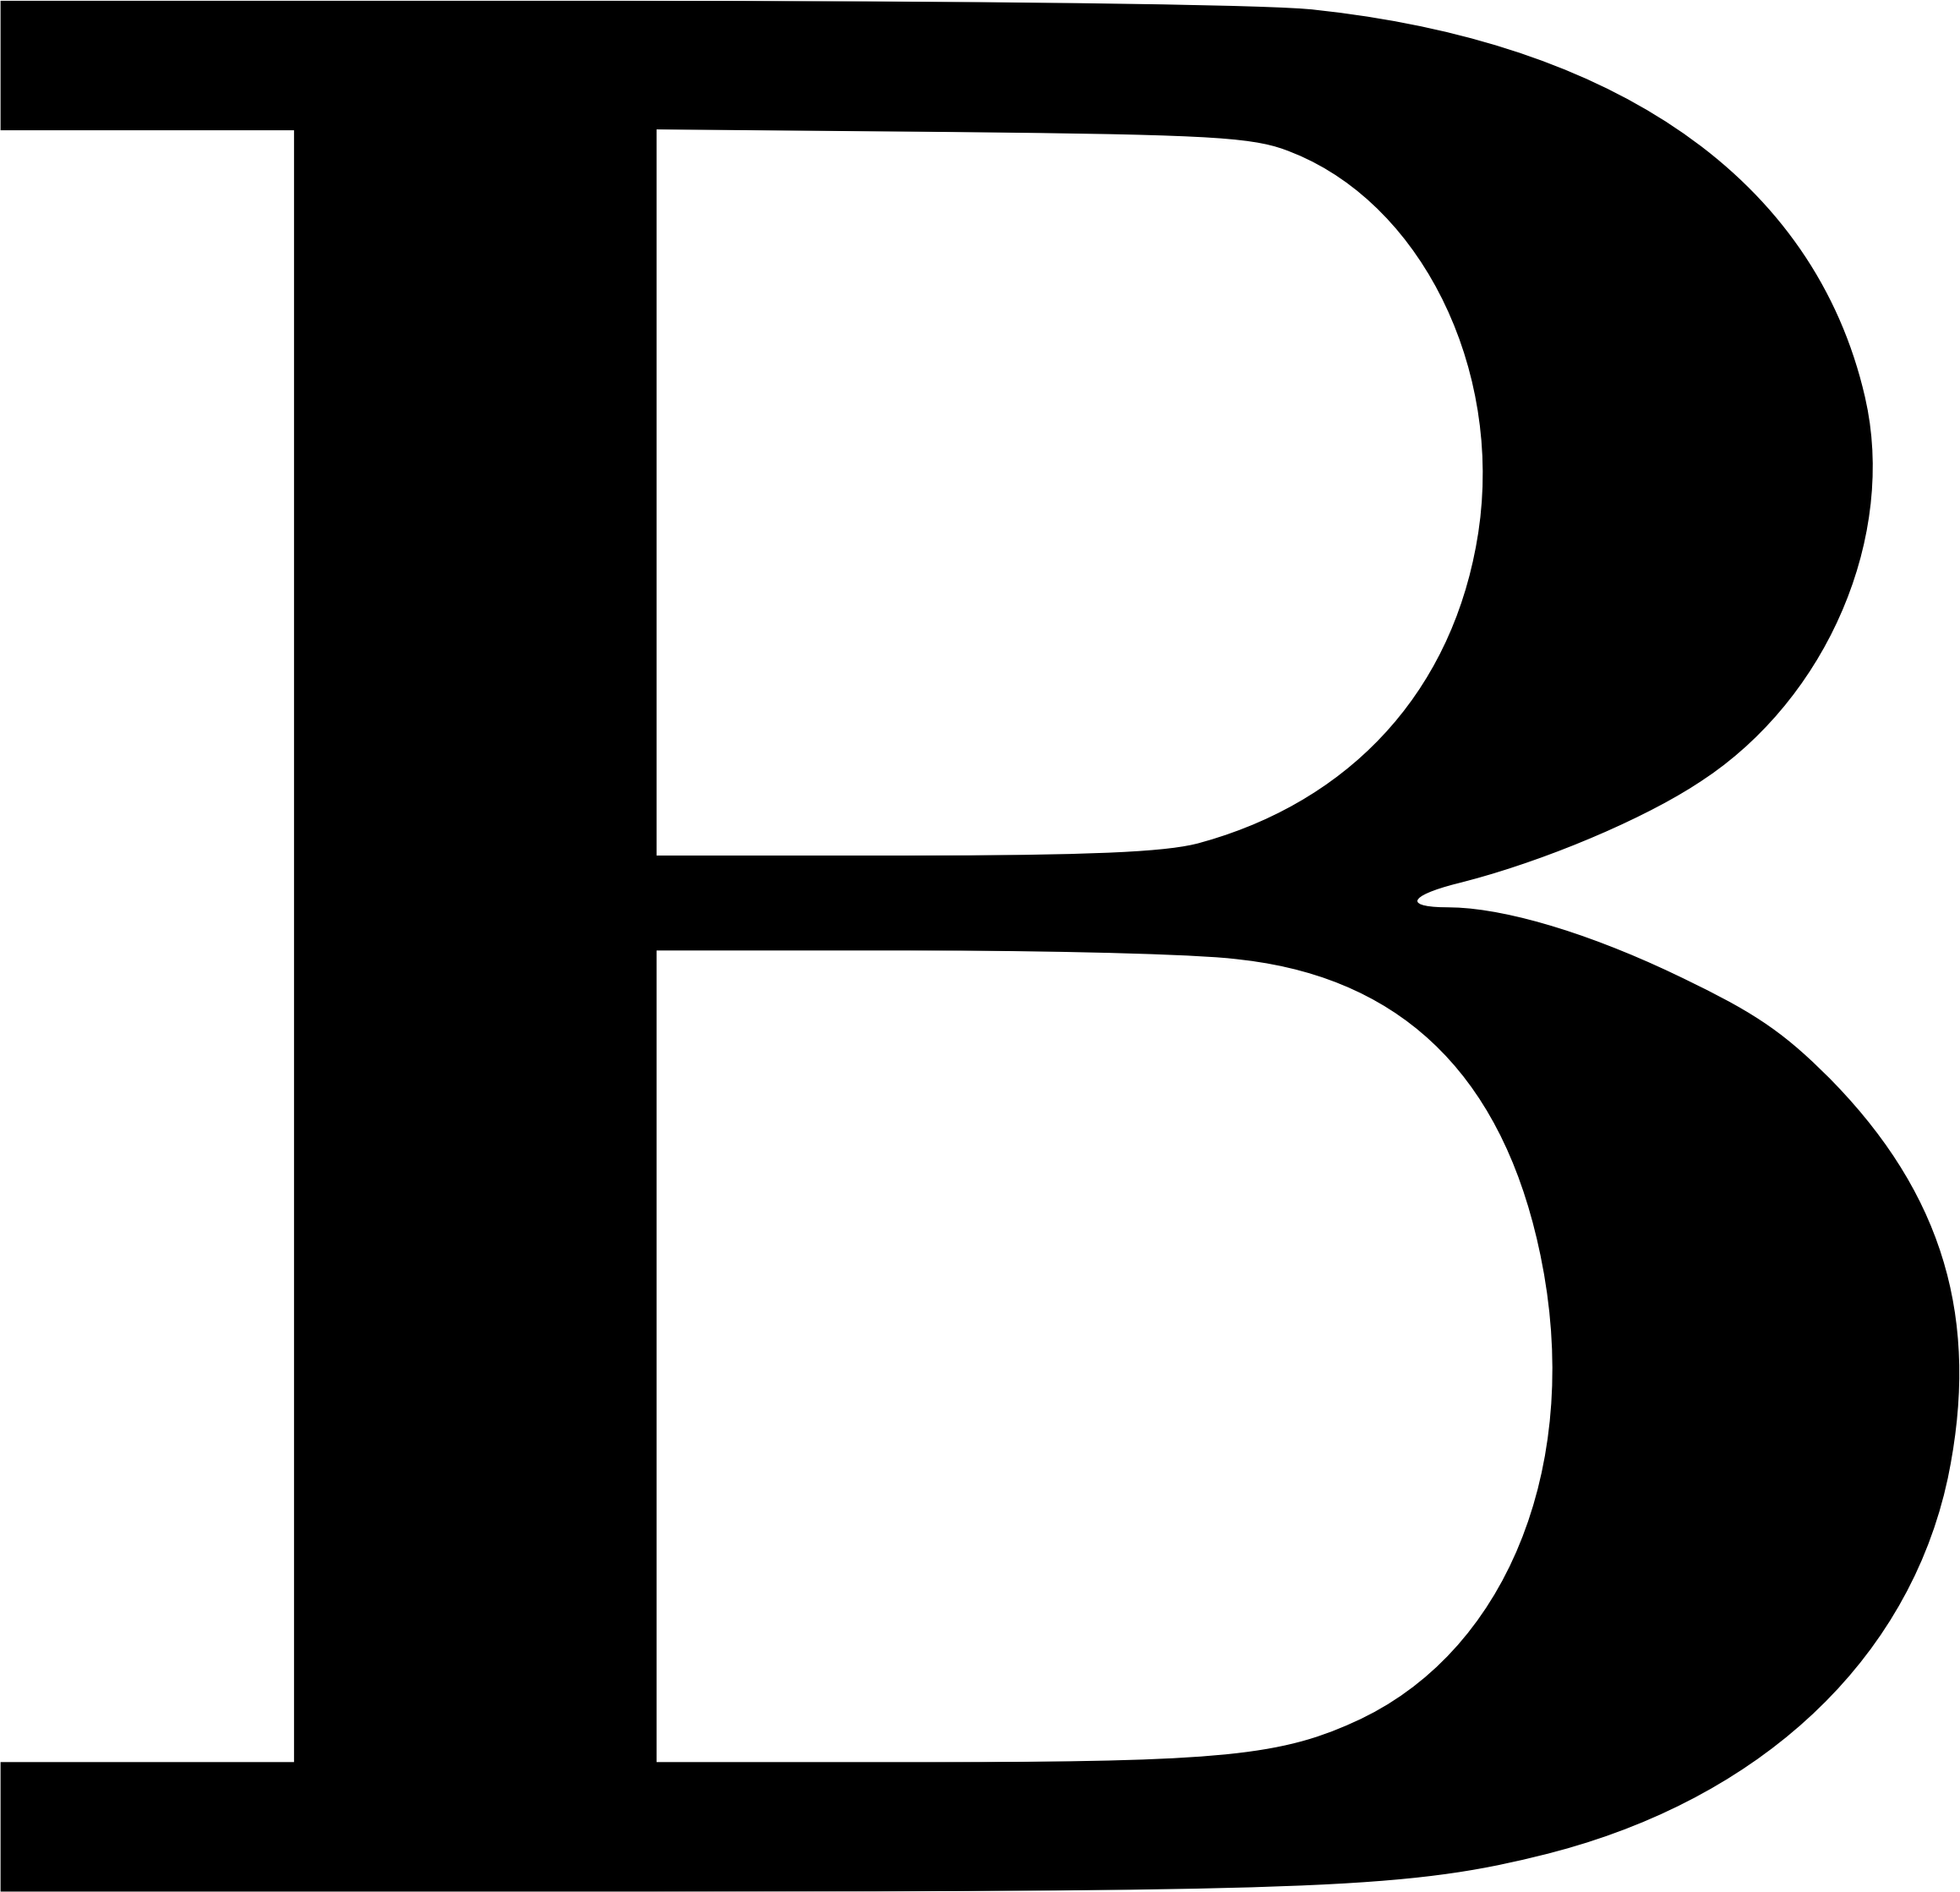 Png in high resolution. B clipart transparent